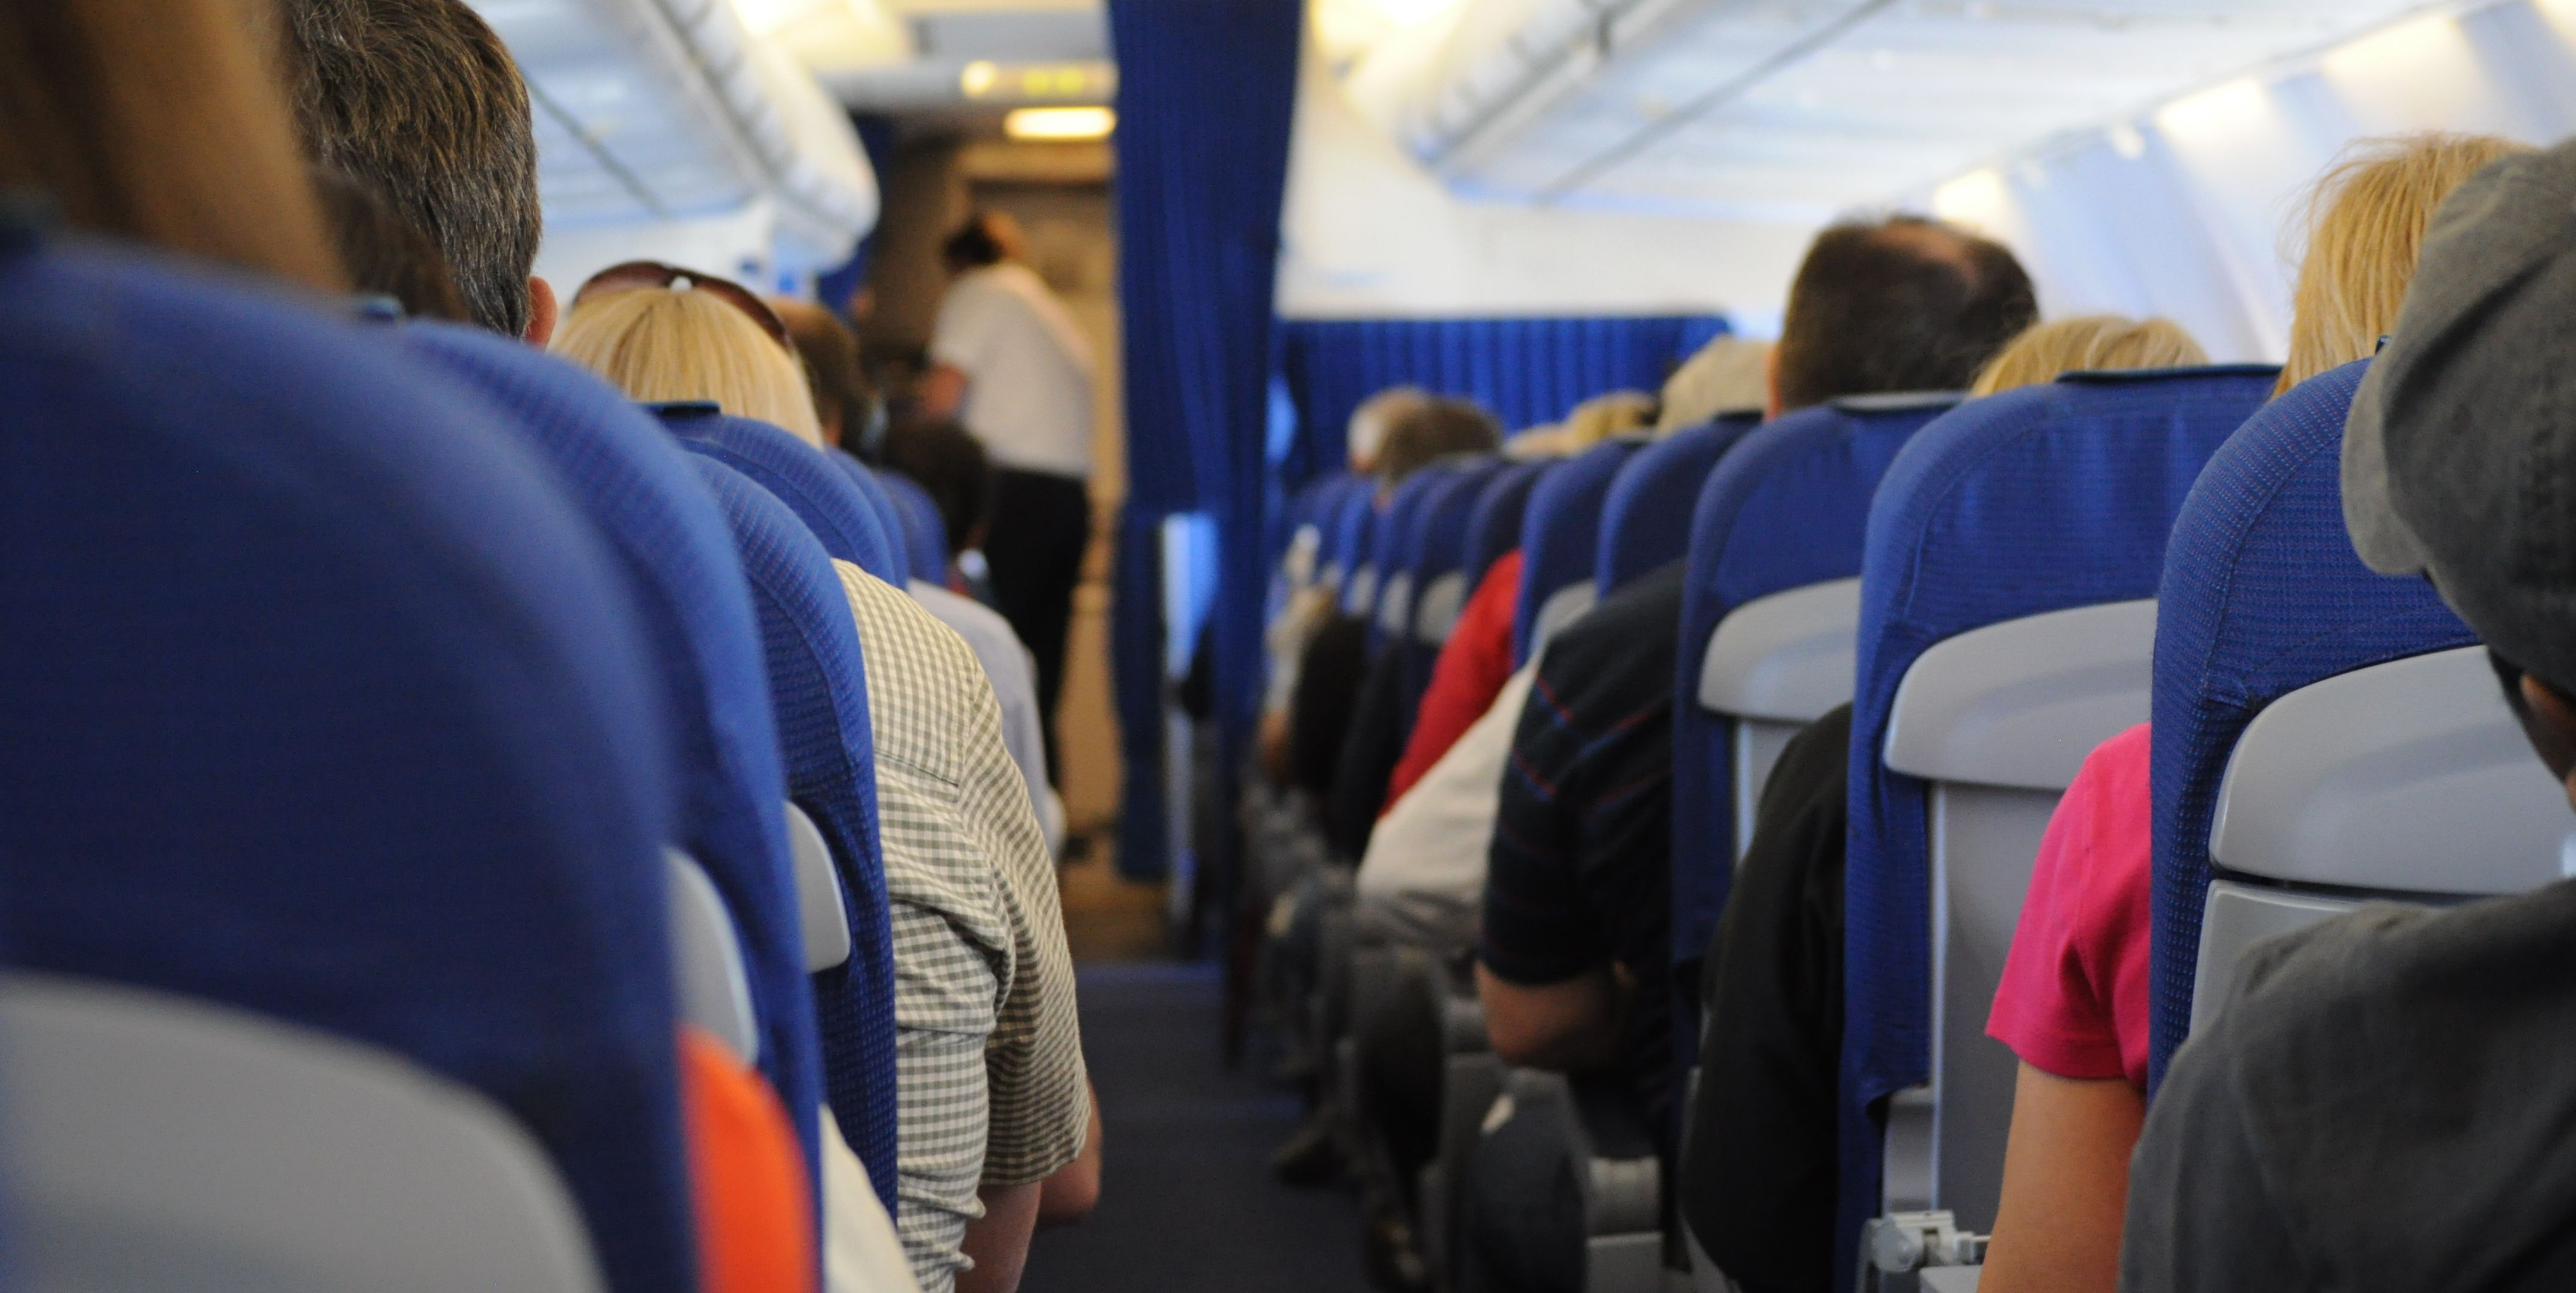 We're Boarding Planes Wrong